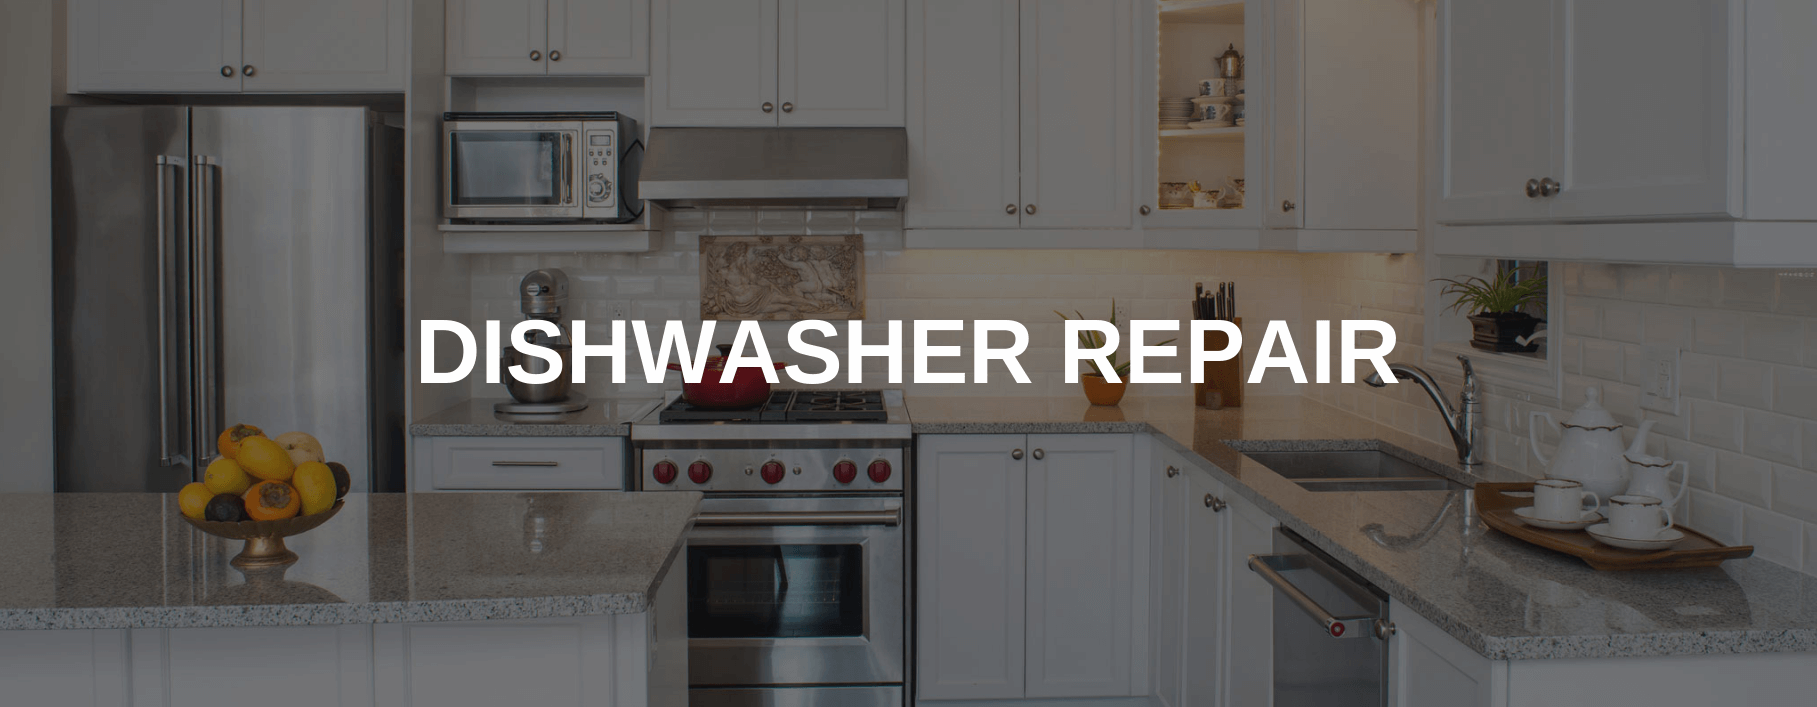 dishwasher repair forest hills